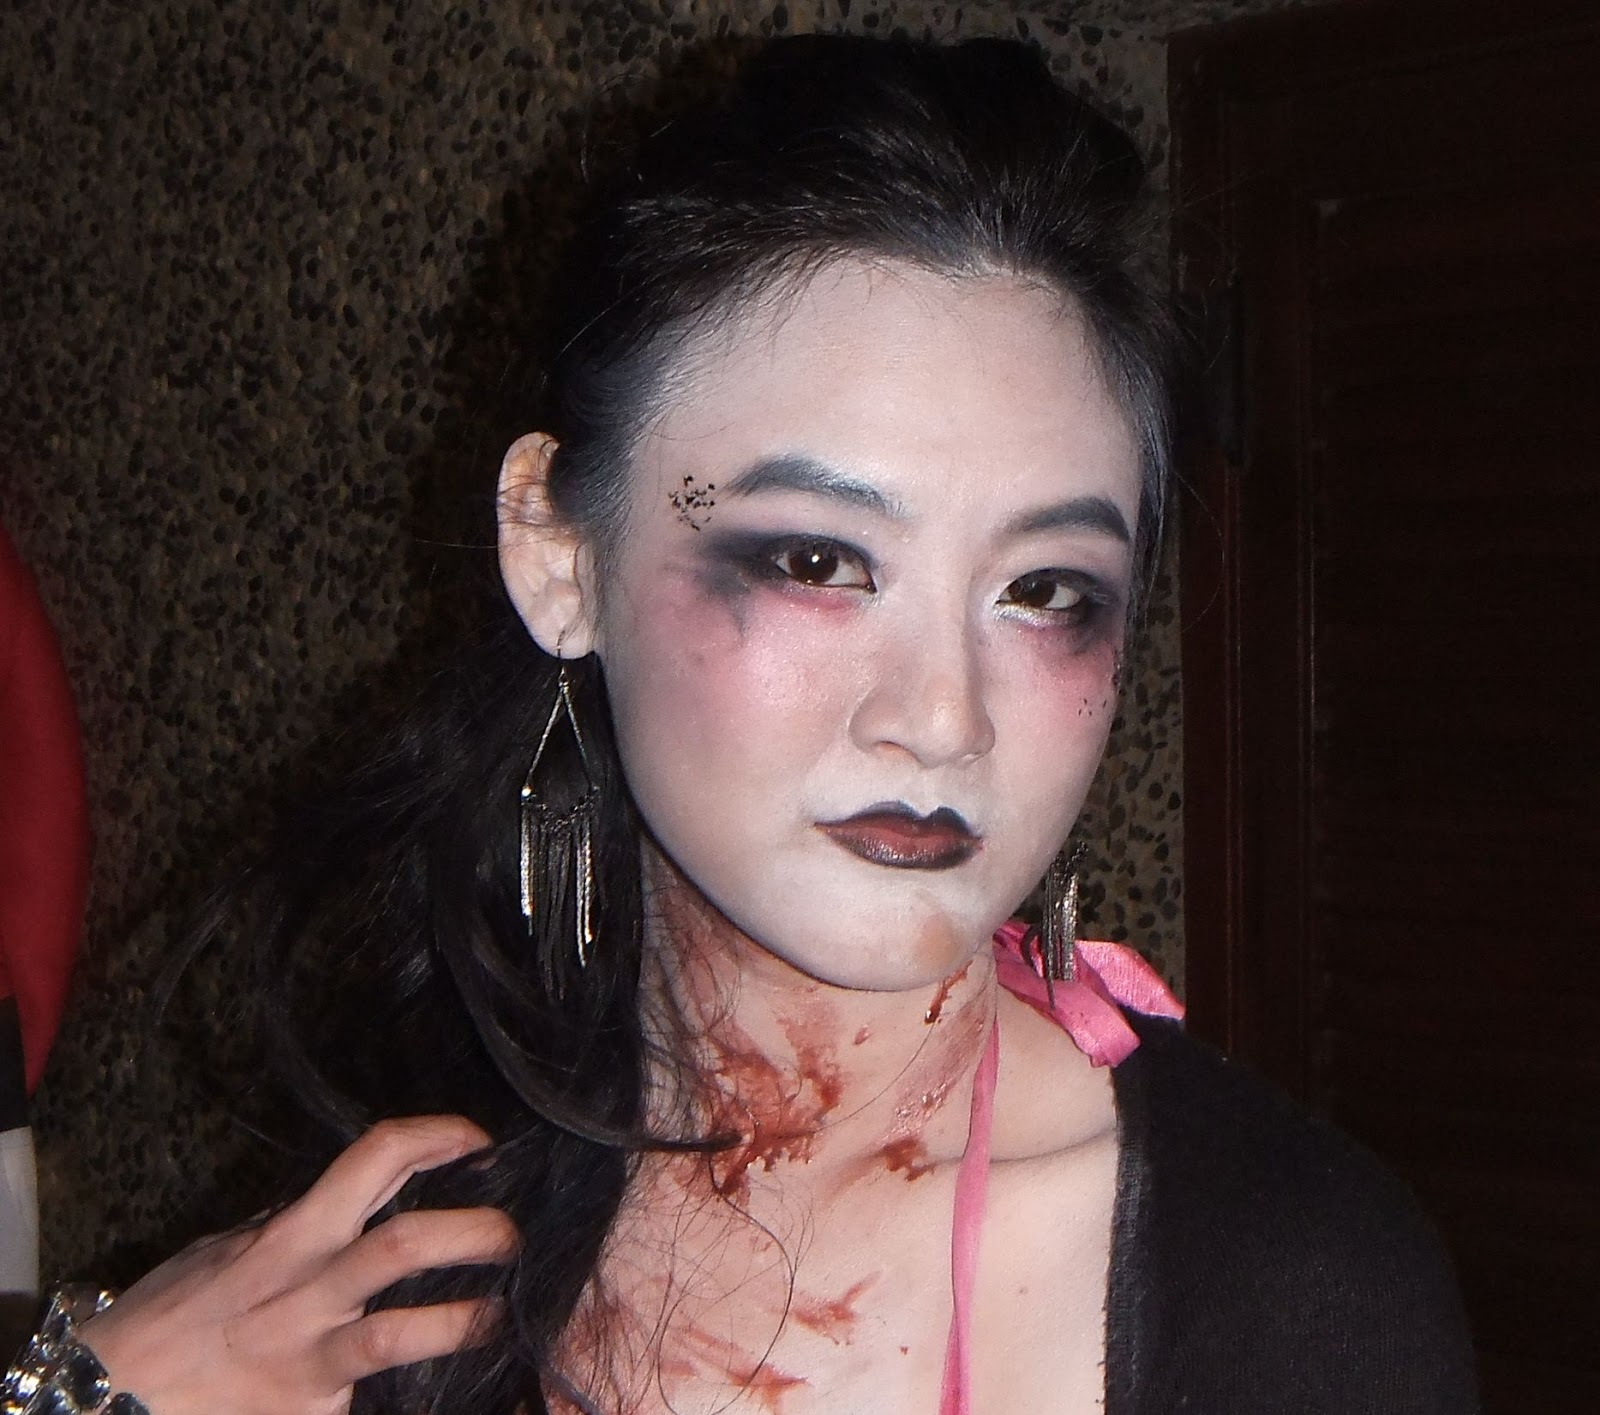 Super scary face girl pictures